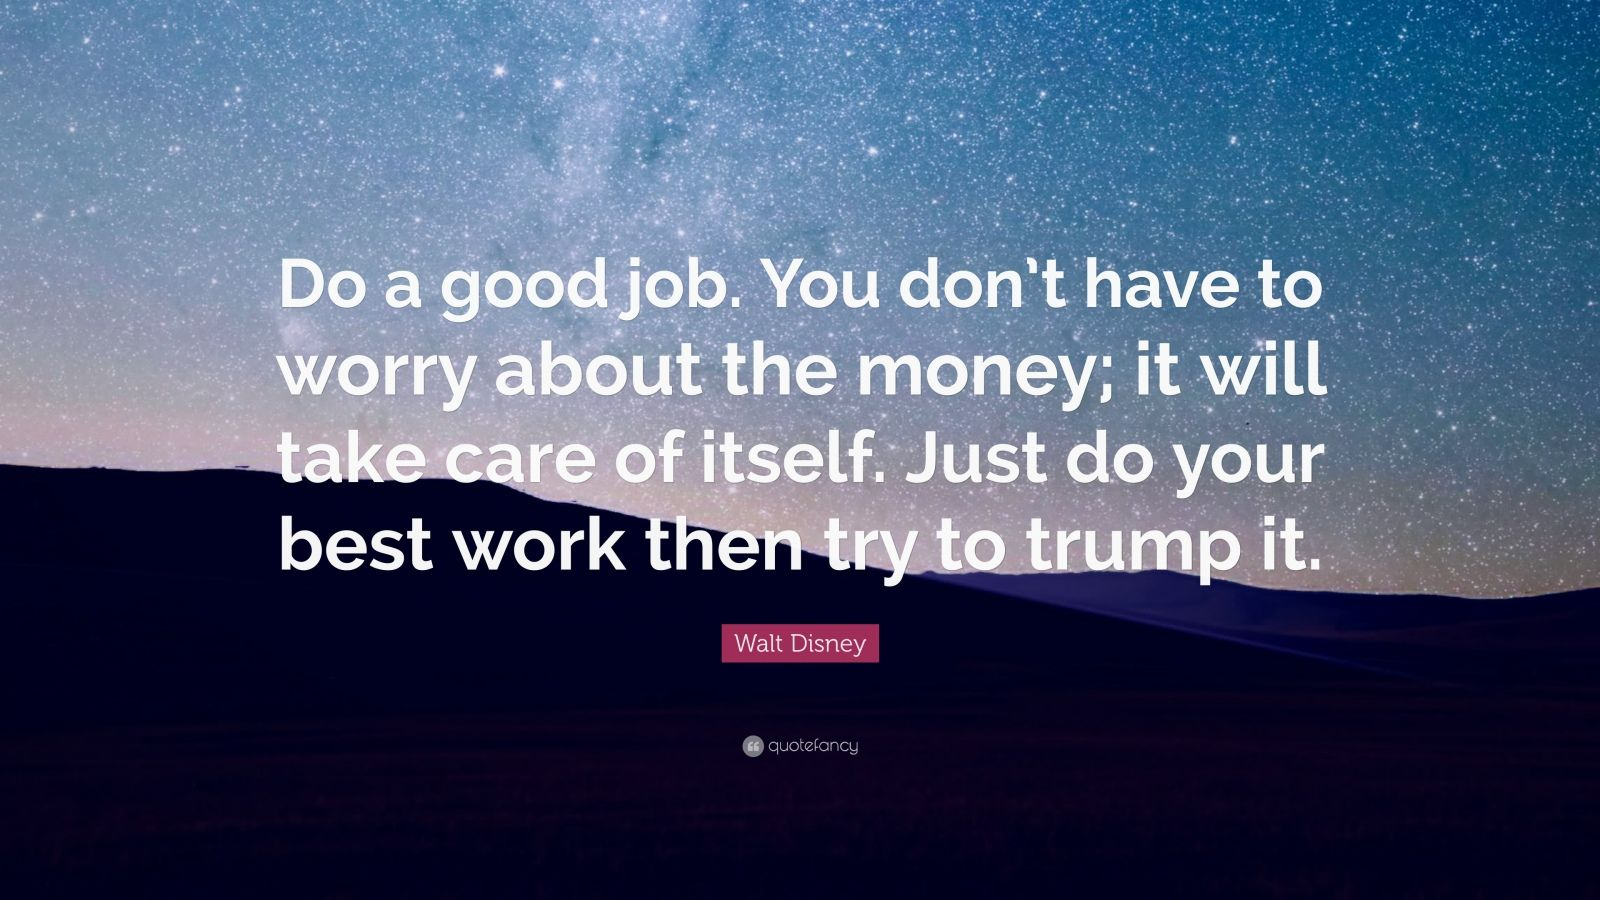 """Walt Disney Quote: """"Do a good job. You don't have to worry about the money; it will take care of itself. Just do your best work then try to trump it."""""""